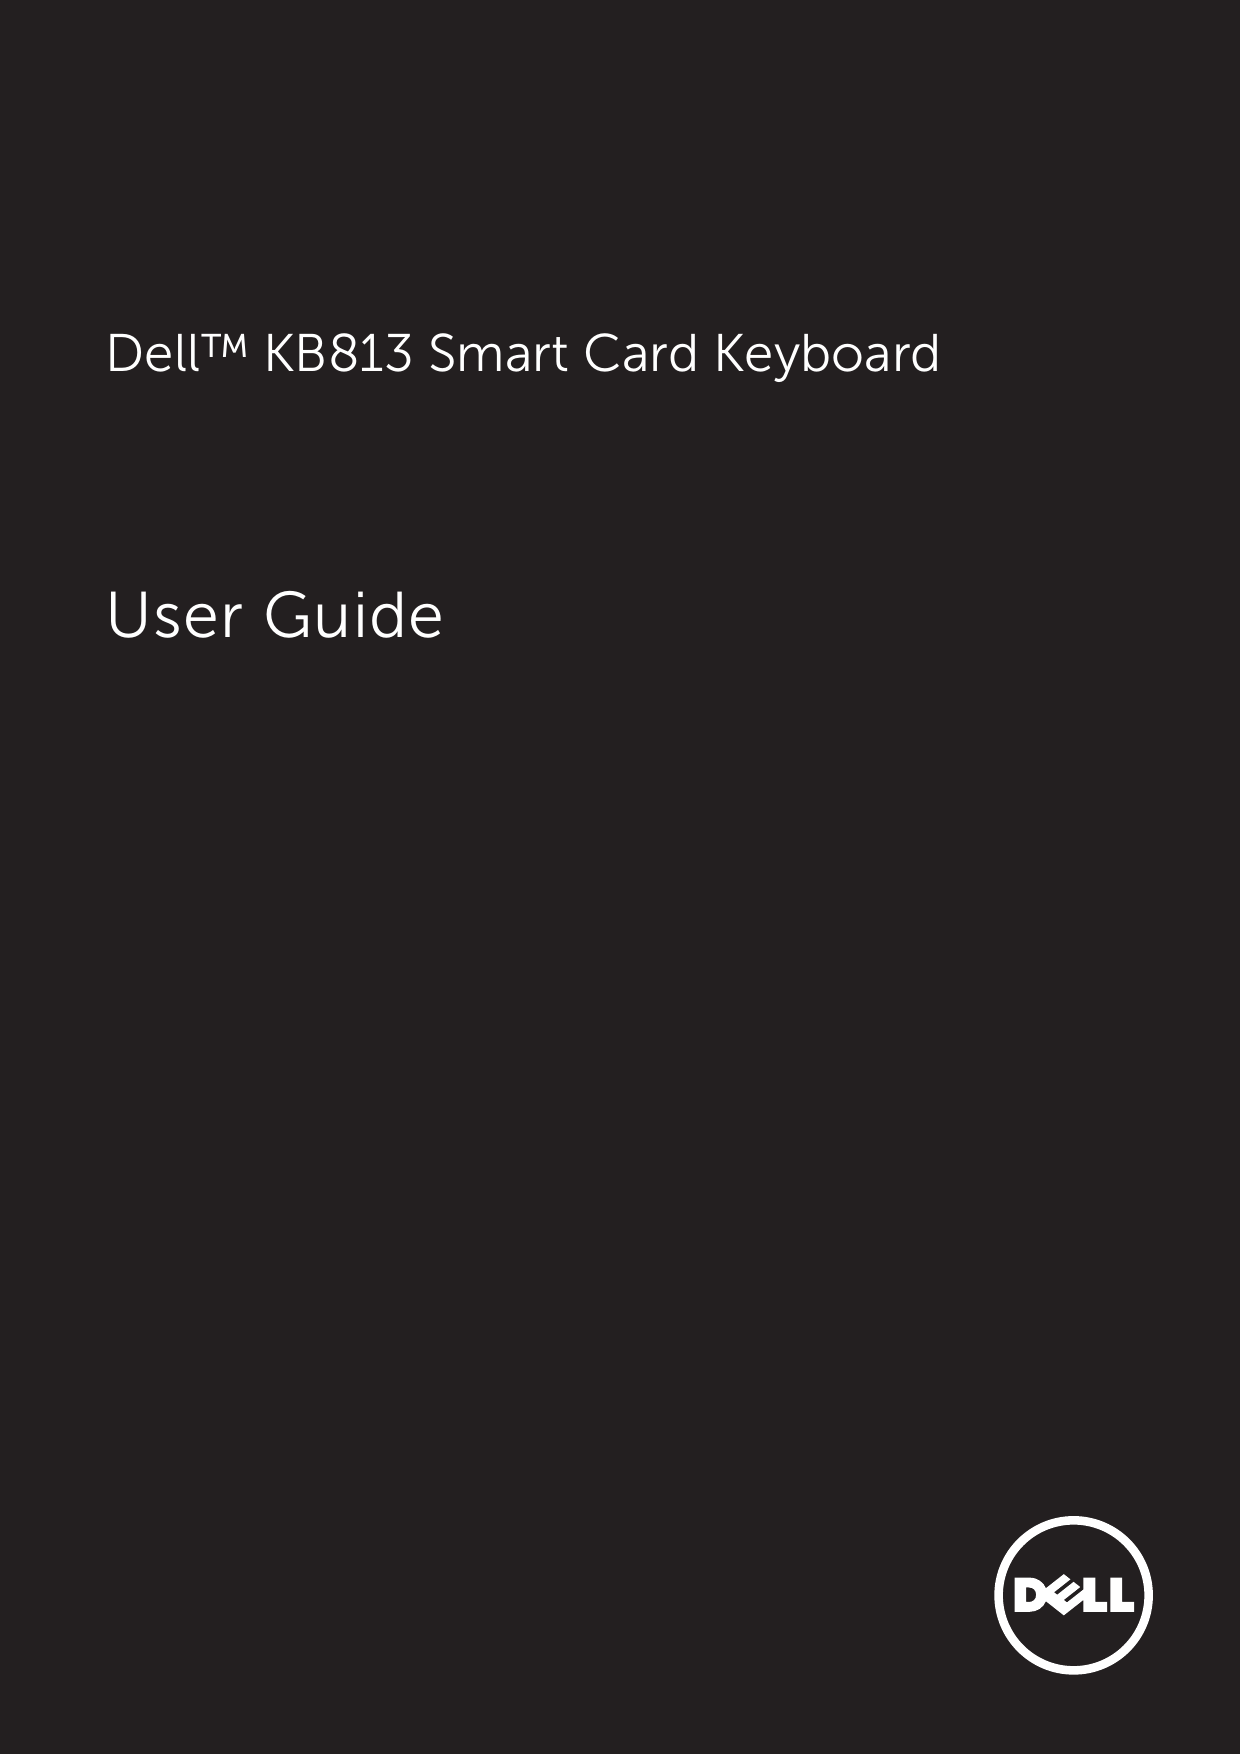 Dell Smartcard Keyboard Kb813 Owners Manual Smart Card User Guide